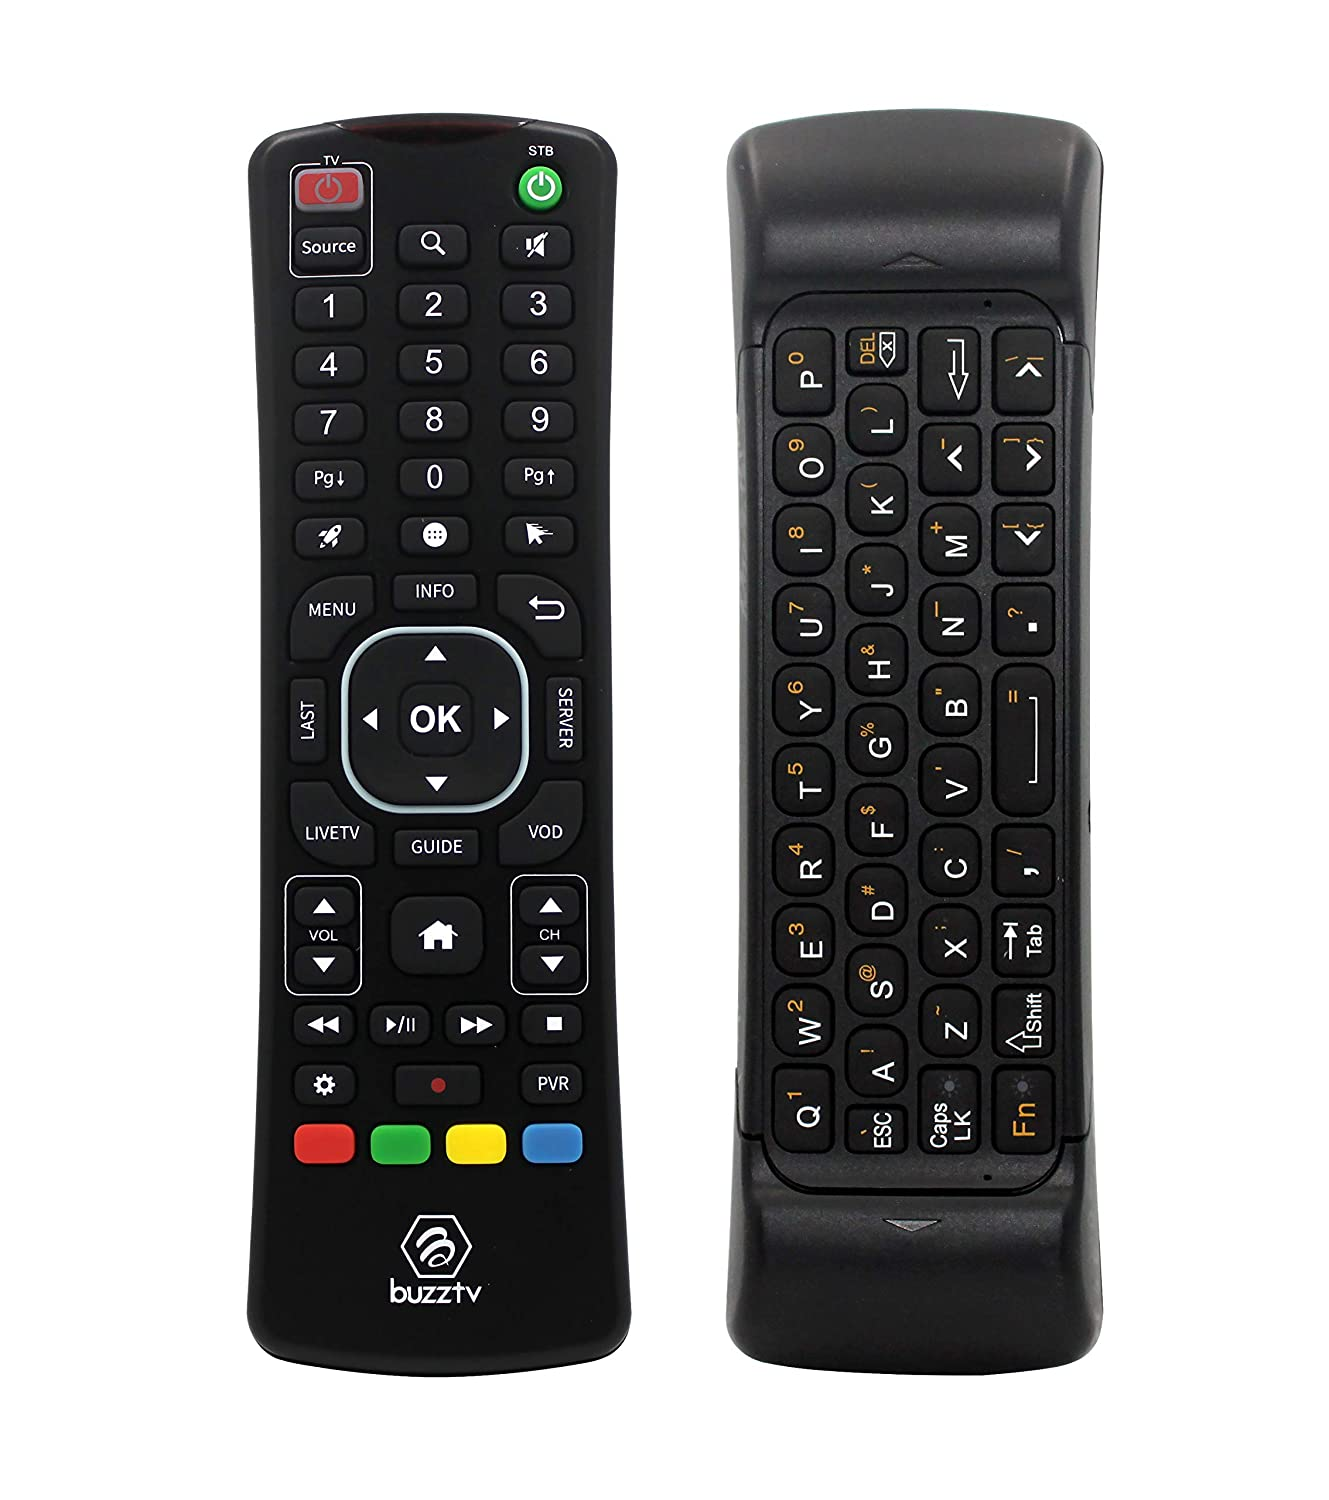 BuzzTV ARQ-100 Wireless Air Mouse Keyboard Remote for Buzz TV IPTV Android